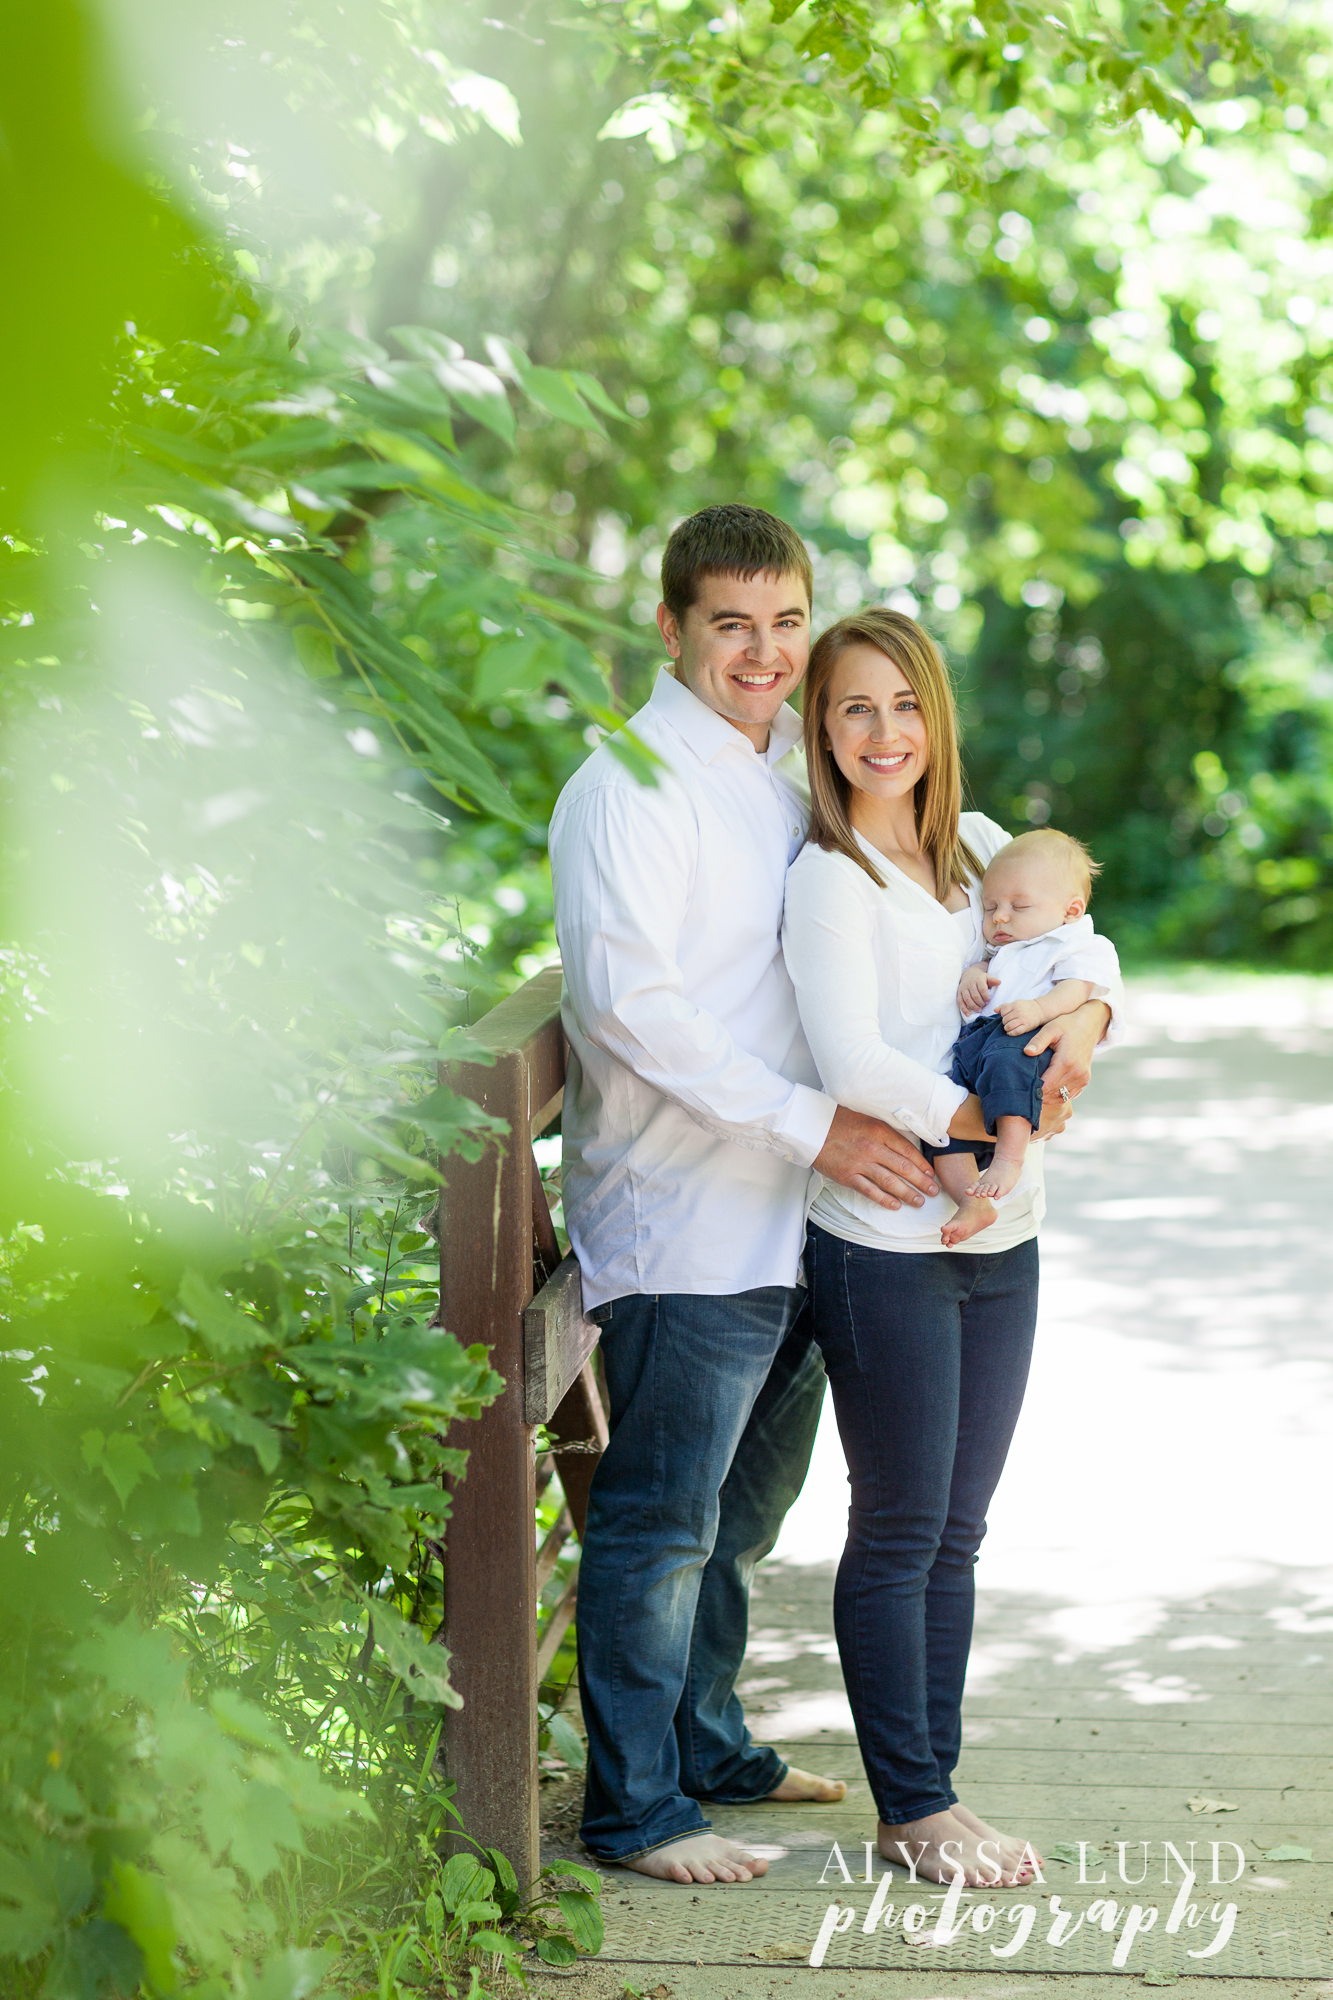 Minnesota outdoor newborn session with parents